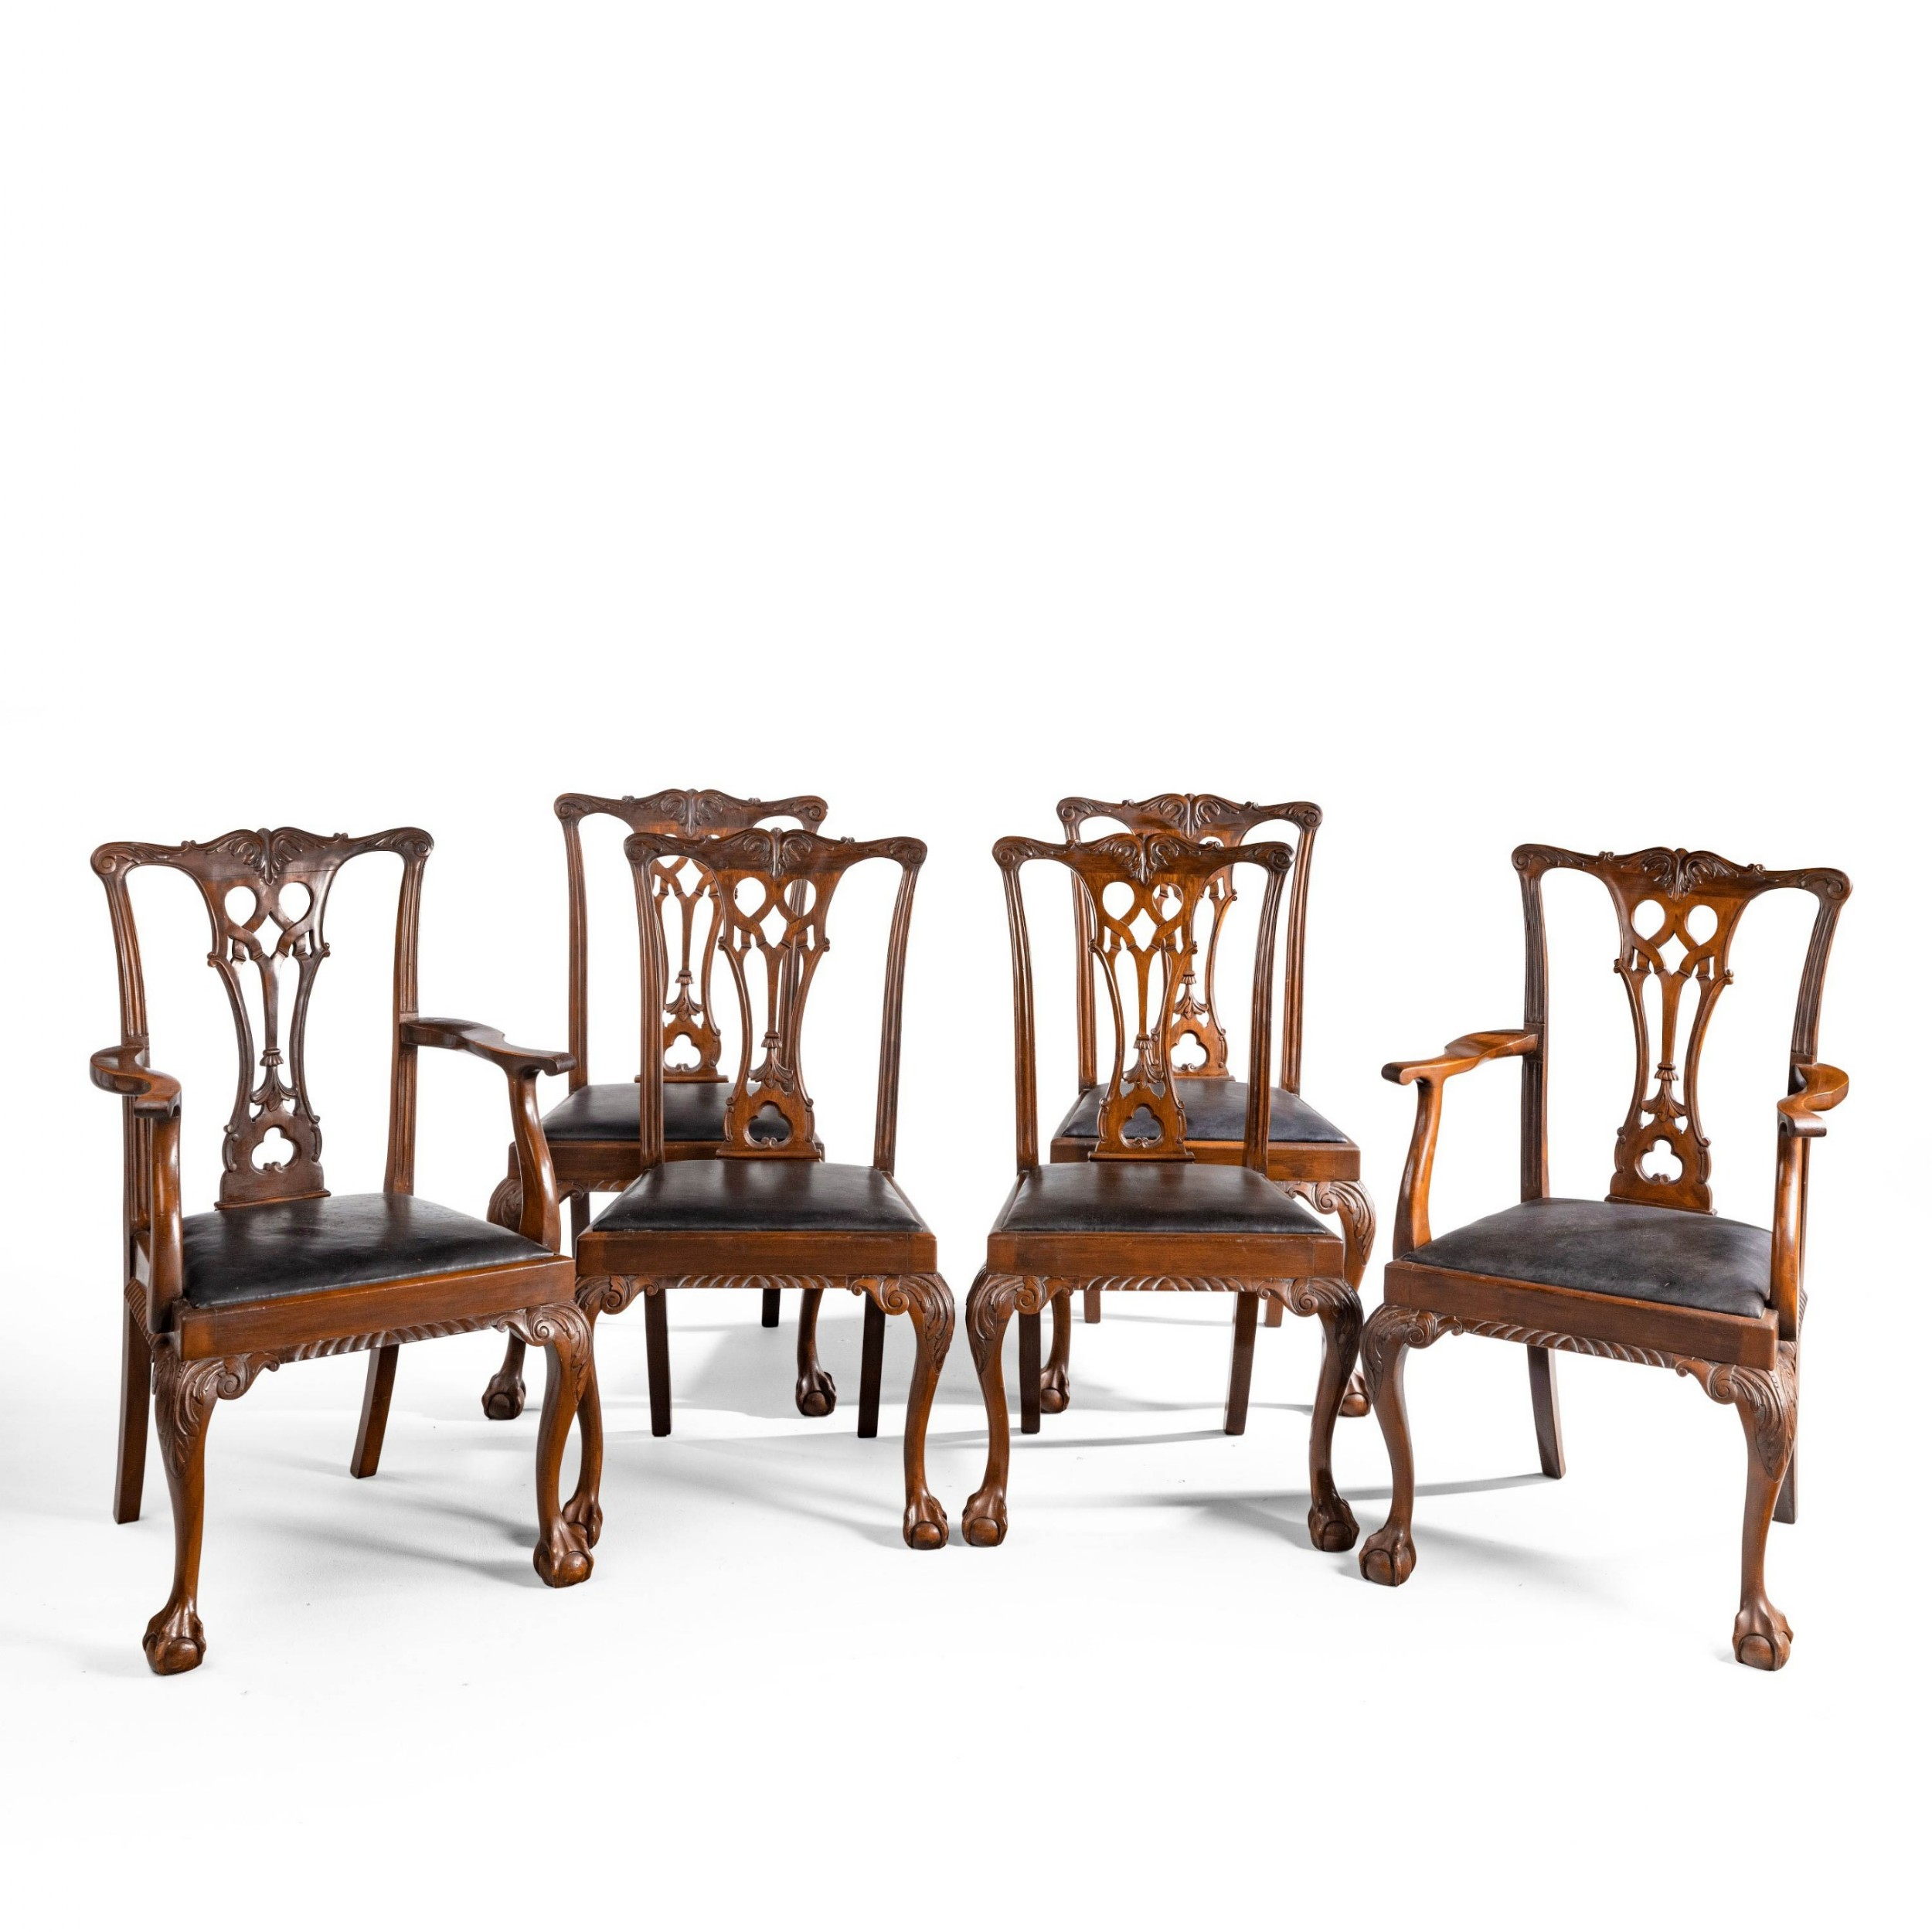 a set of 6 42 early 20th century dining chairs of chippendale design